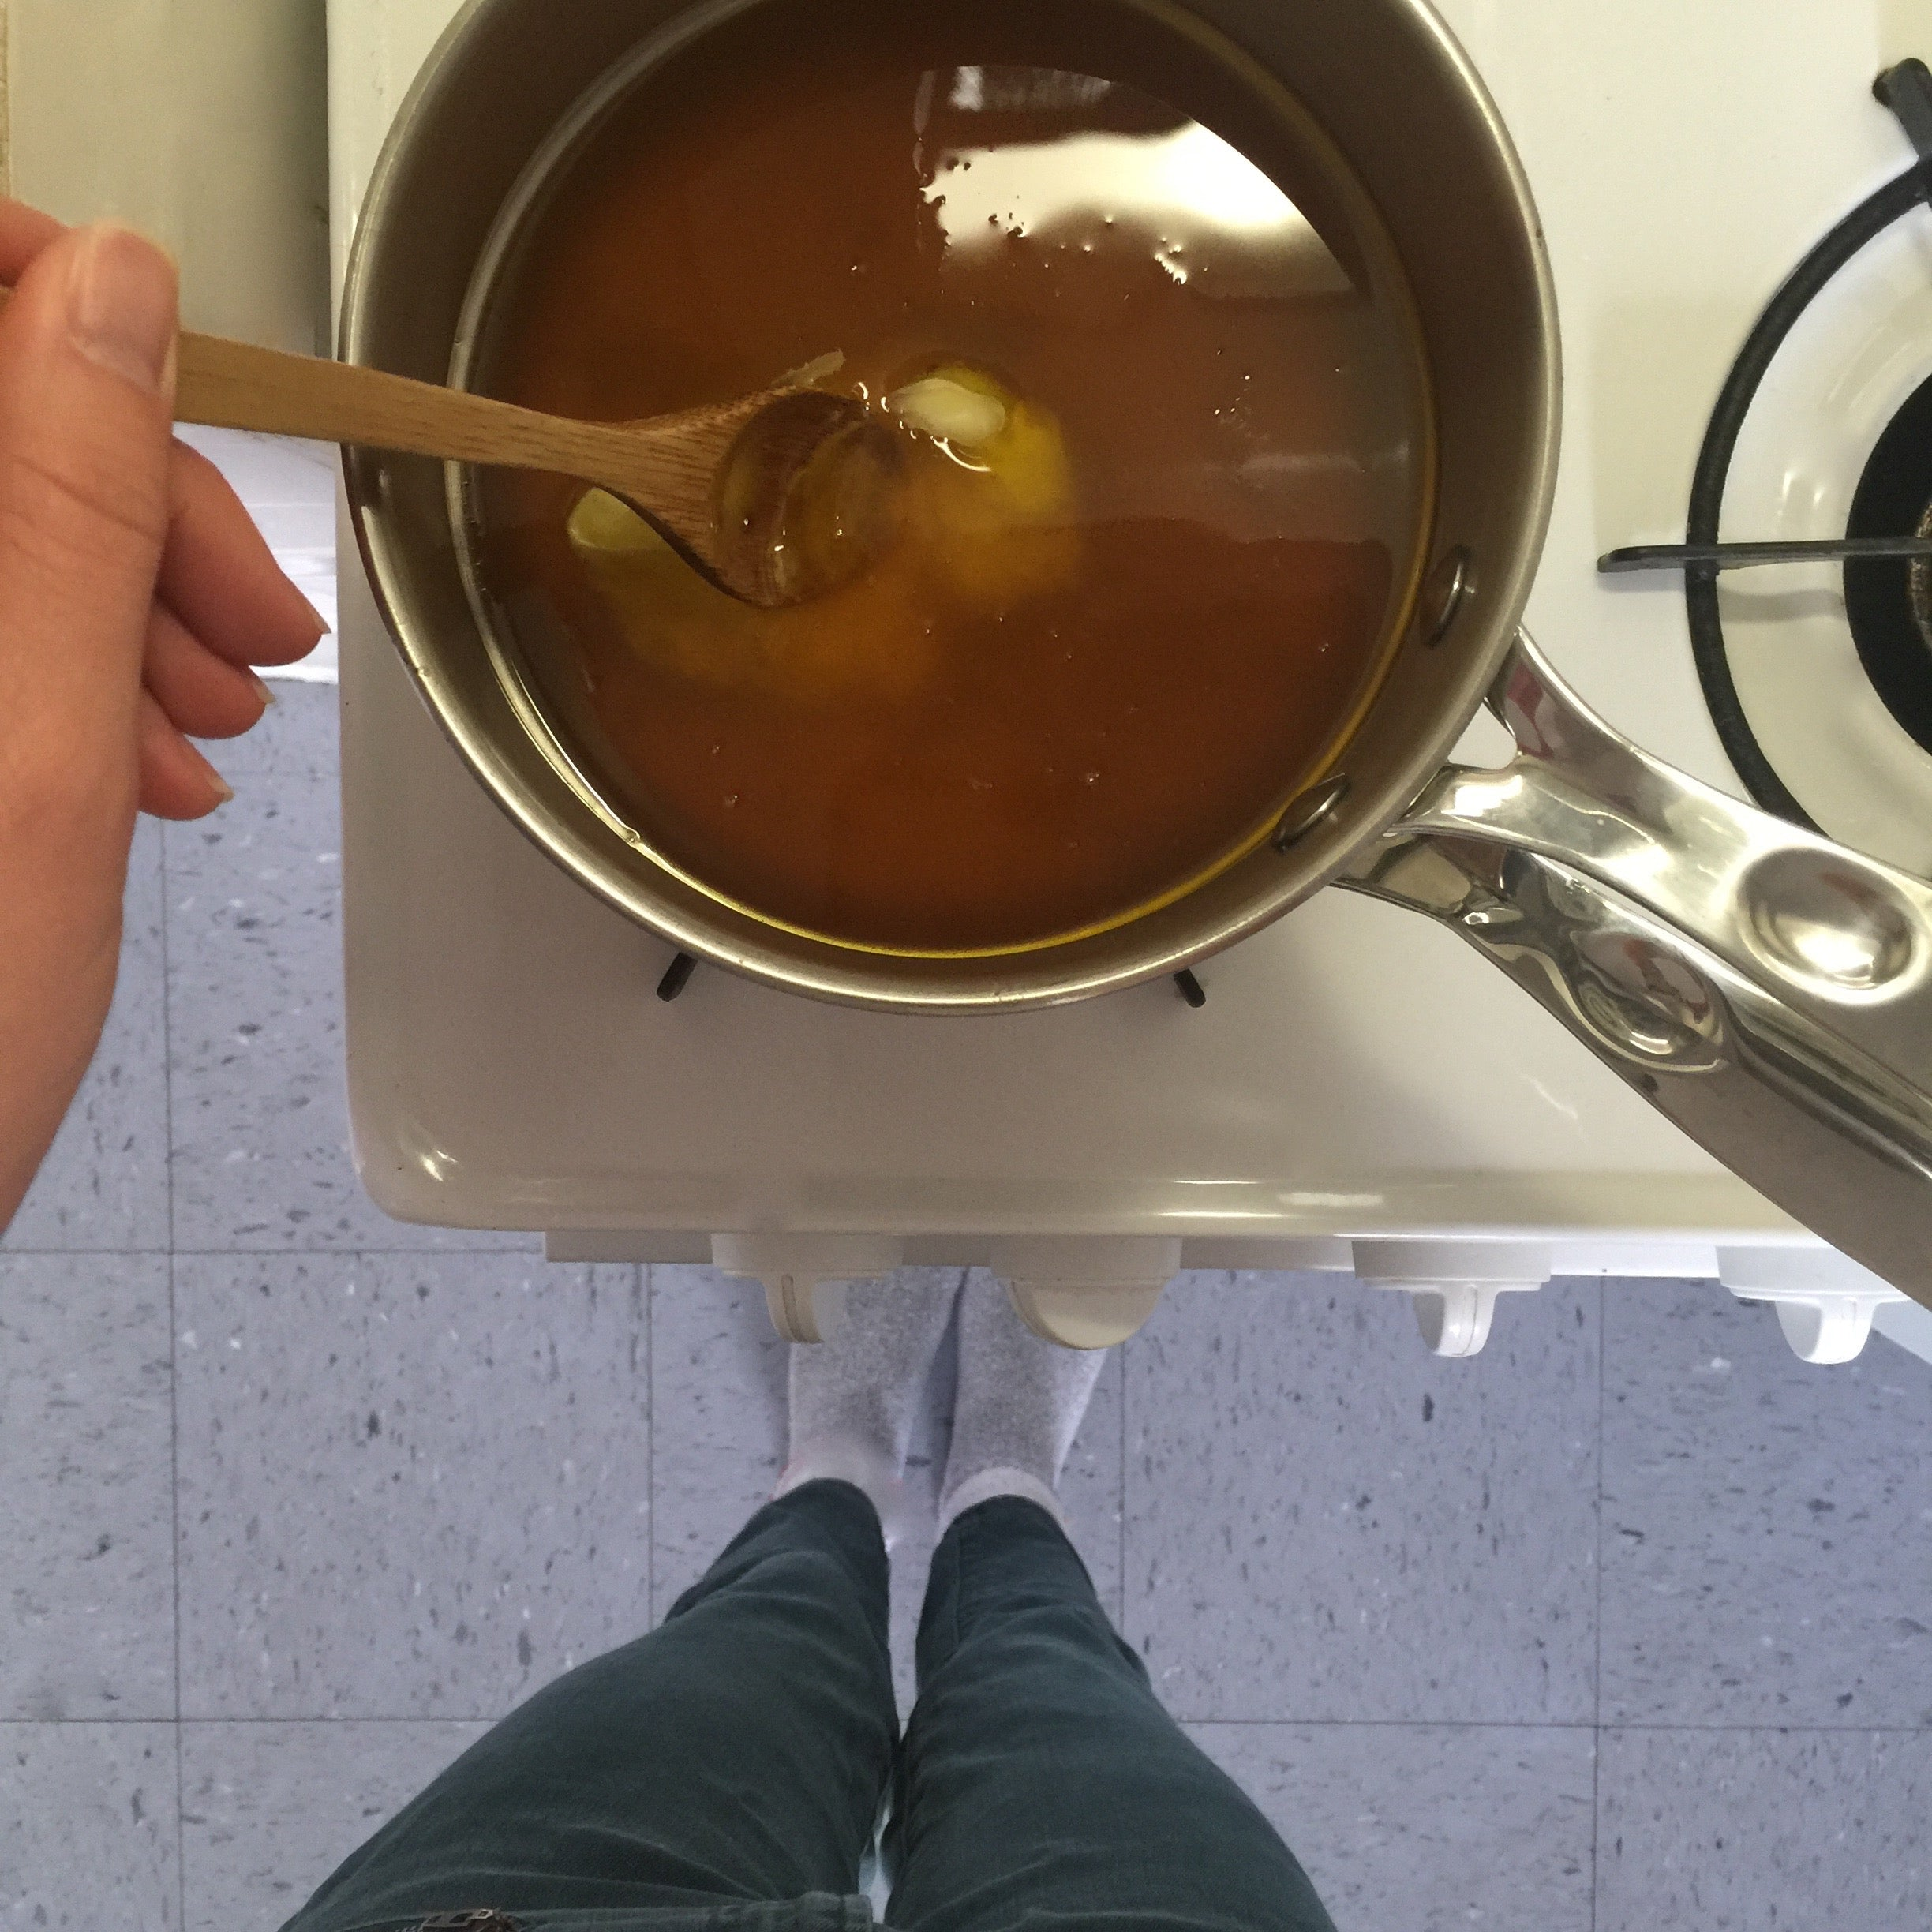 Melting beeswax for candle making at home DIY.